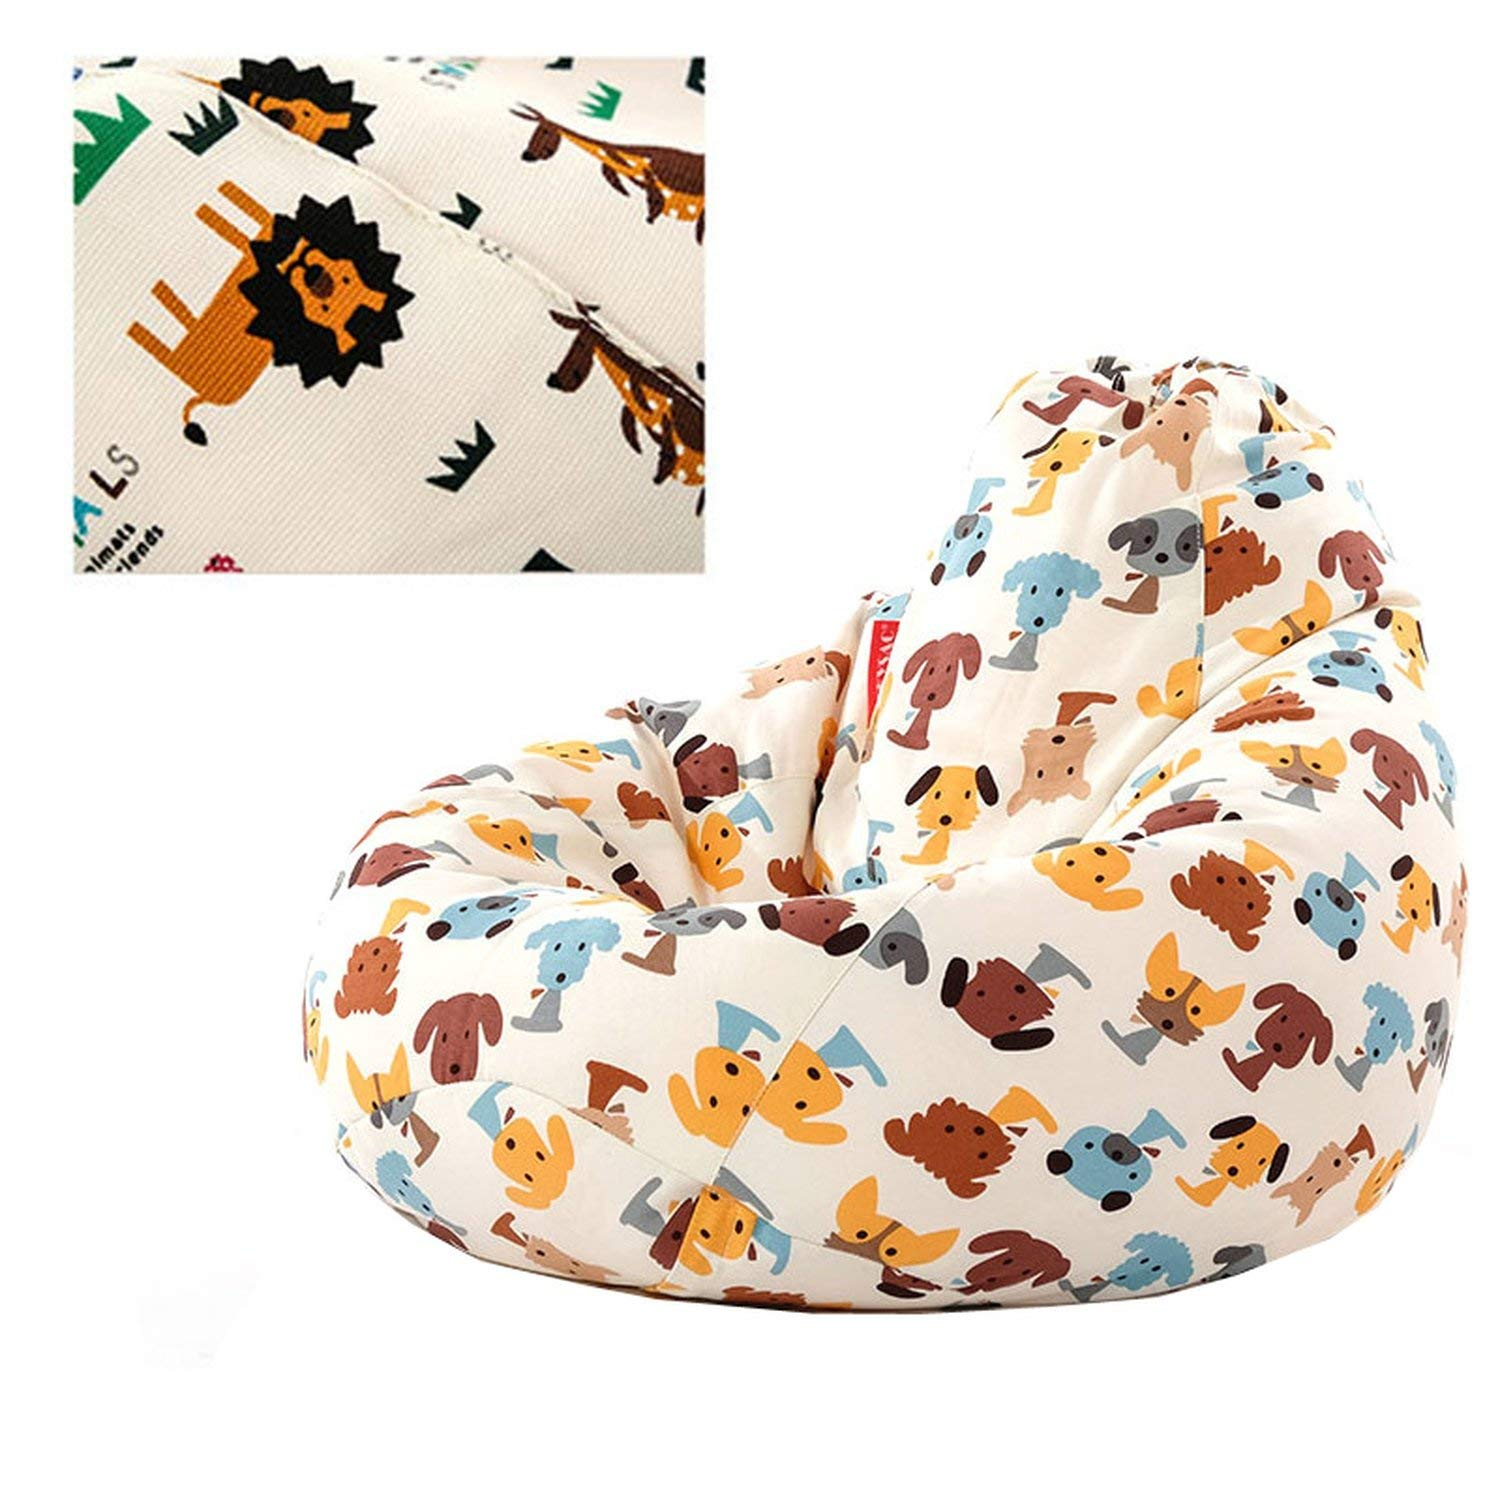 Swell Amazon Com Cute Animal Bean Bag Lounger Sofa Cover Chairs Machost Co Dining Chair Design Ideas Machostcouk